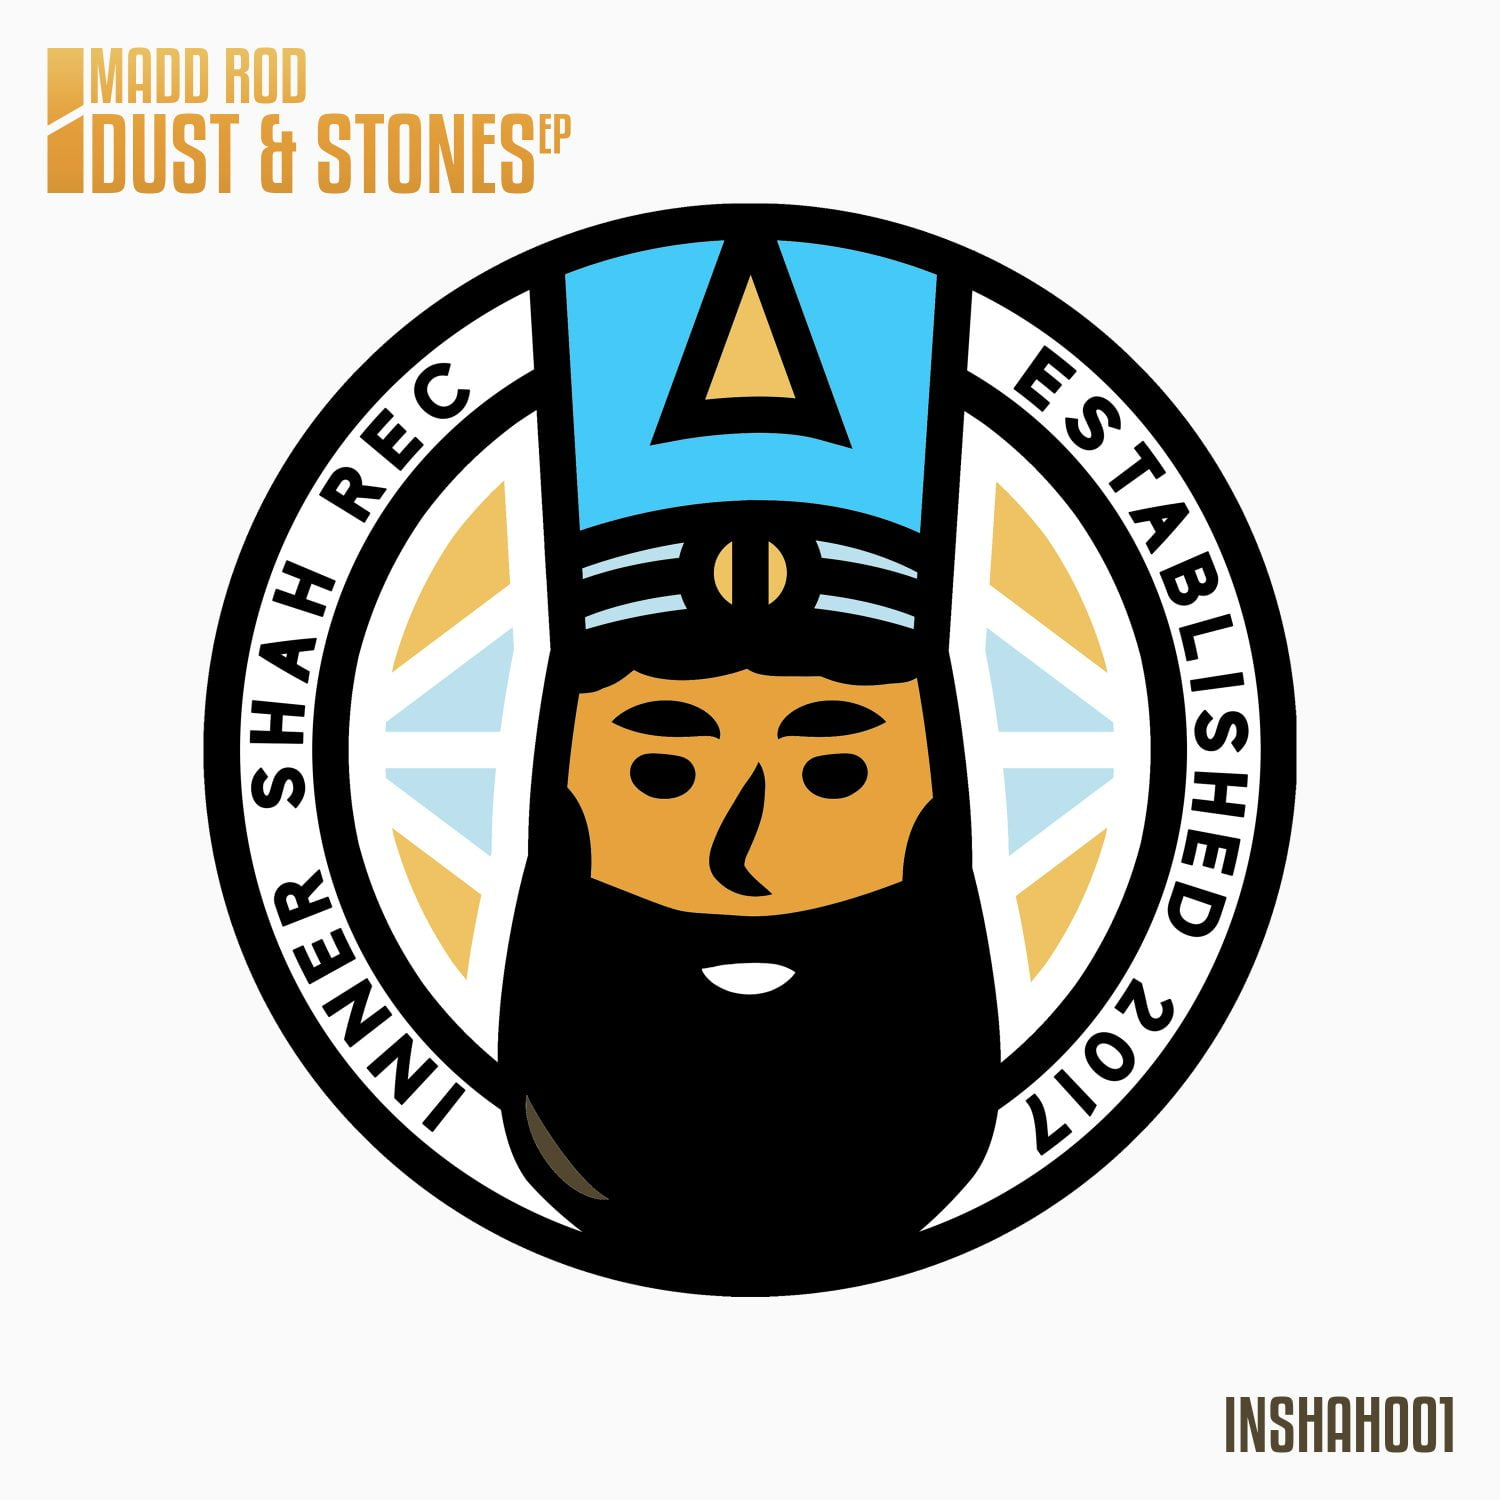 Official Artwork for Madd Rod's Dust & Stones EP